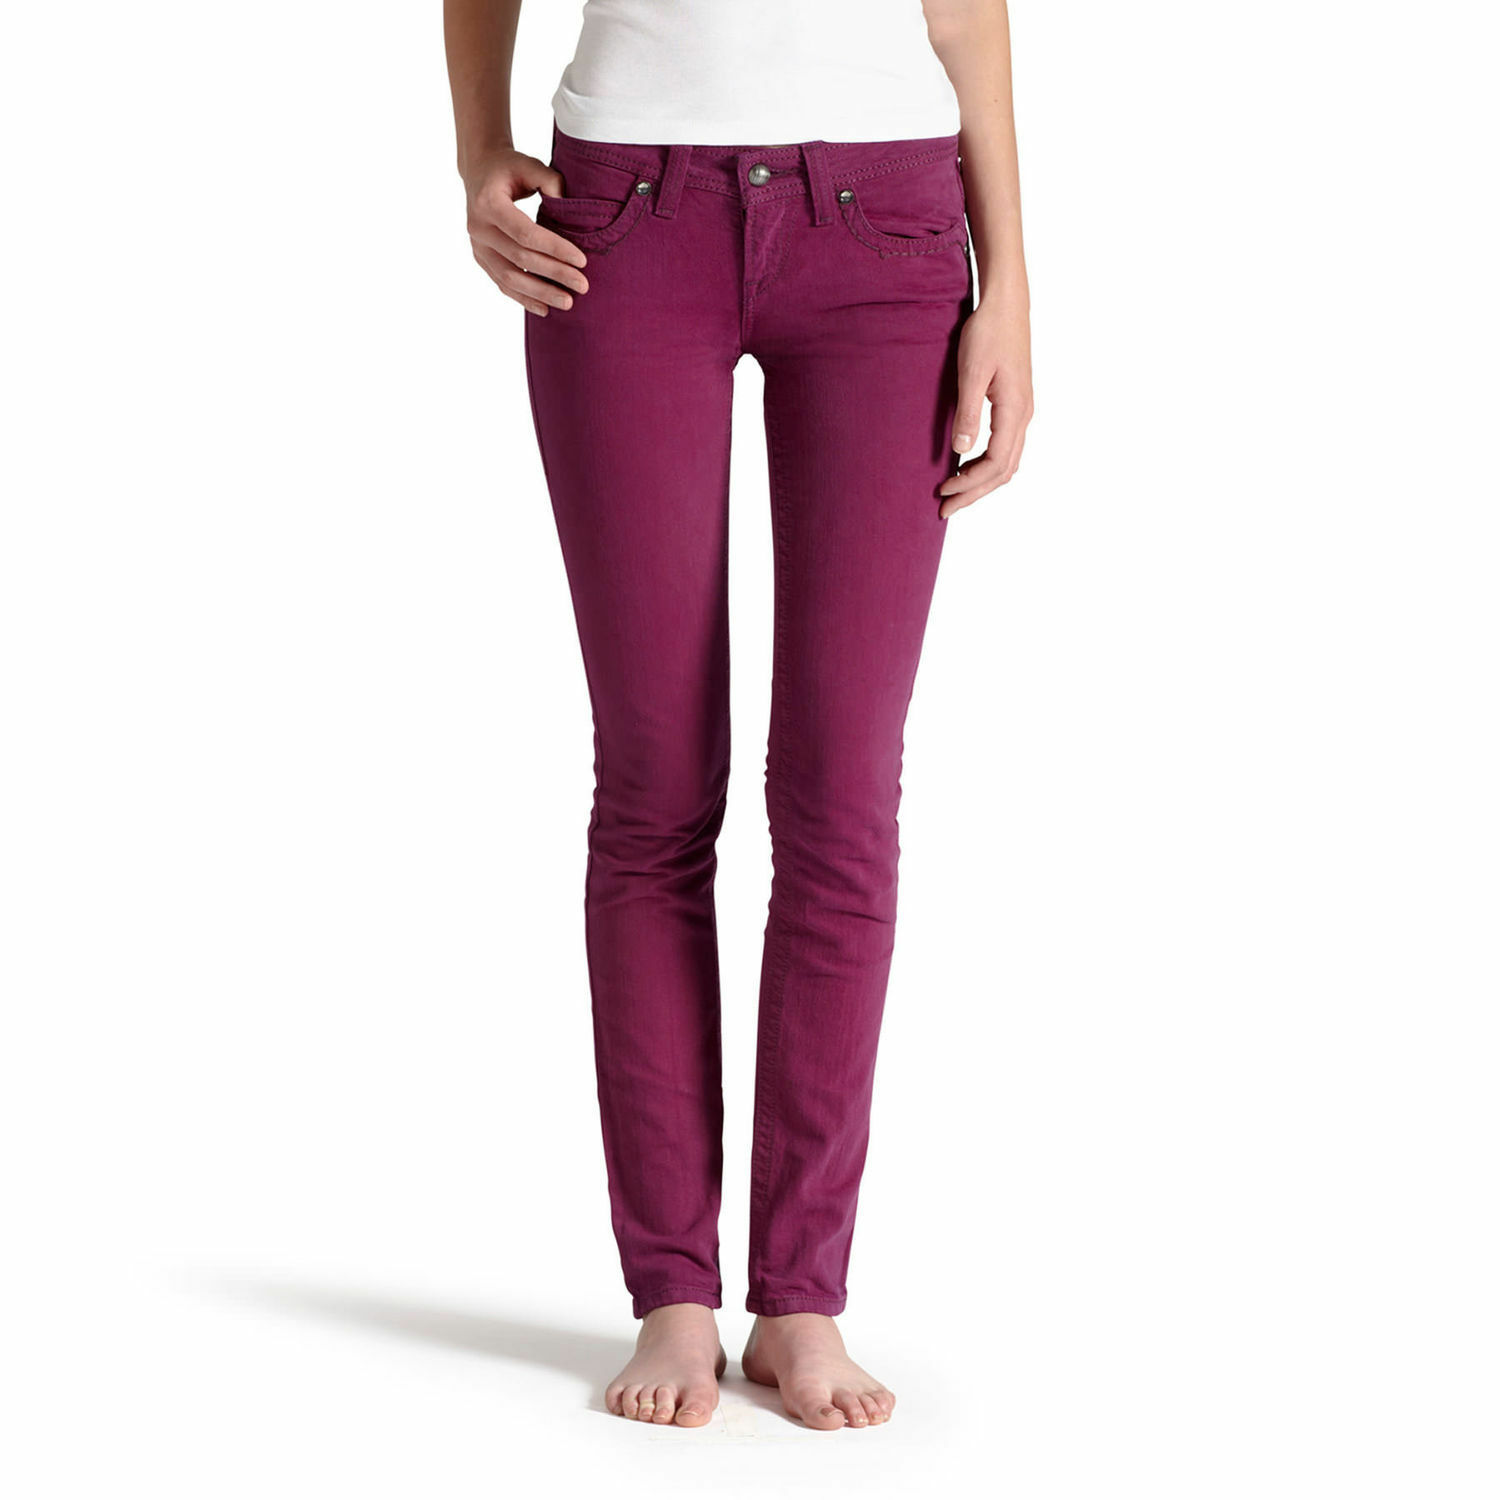 NWT Ariat Women's Onyx Low RIse Stretch Skinny Jeans Fuchsia purple Pants 26R 4